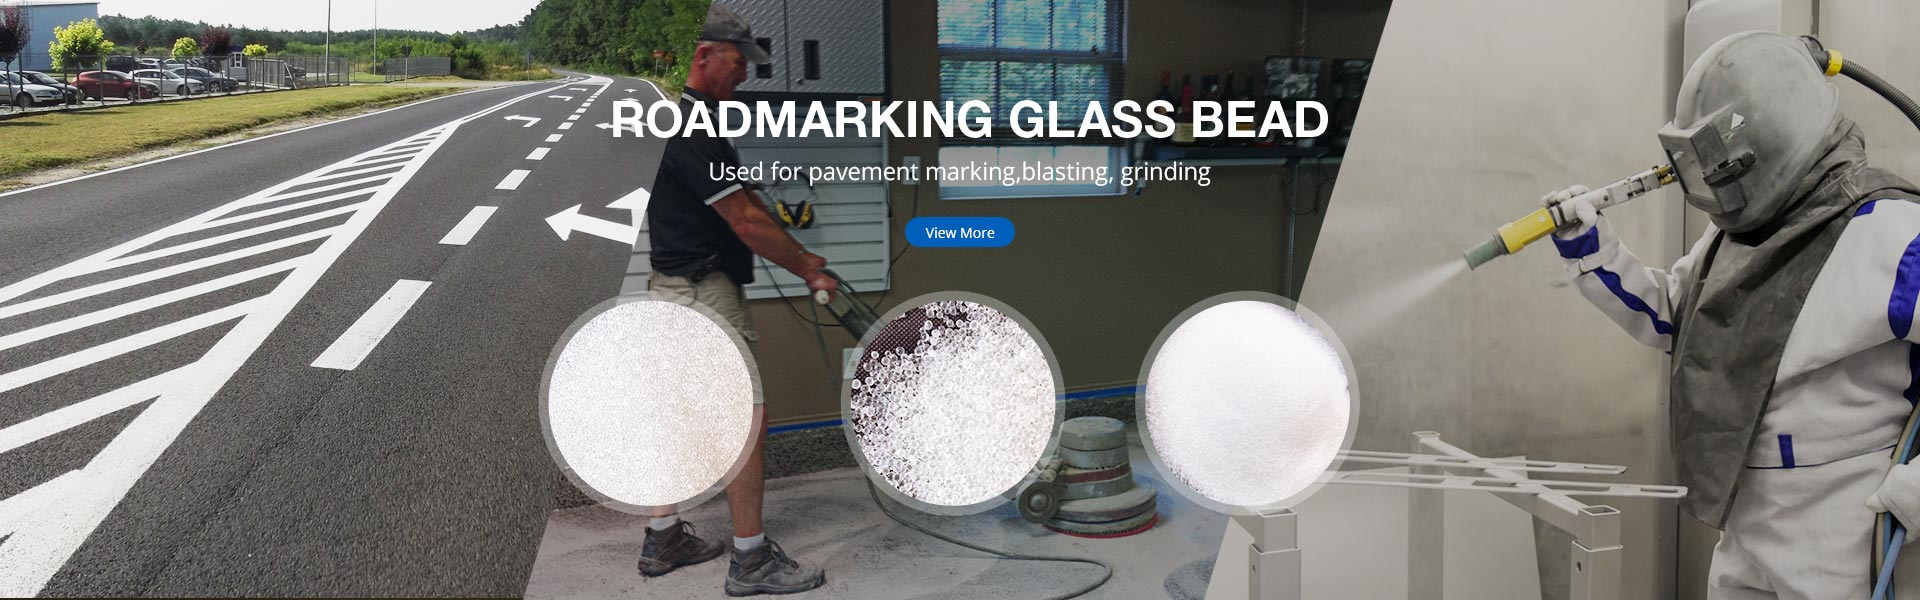 Road Marking Glass Bead